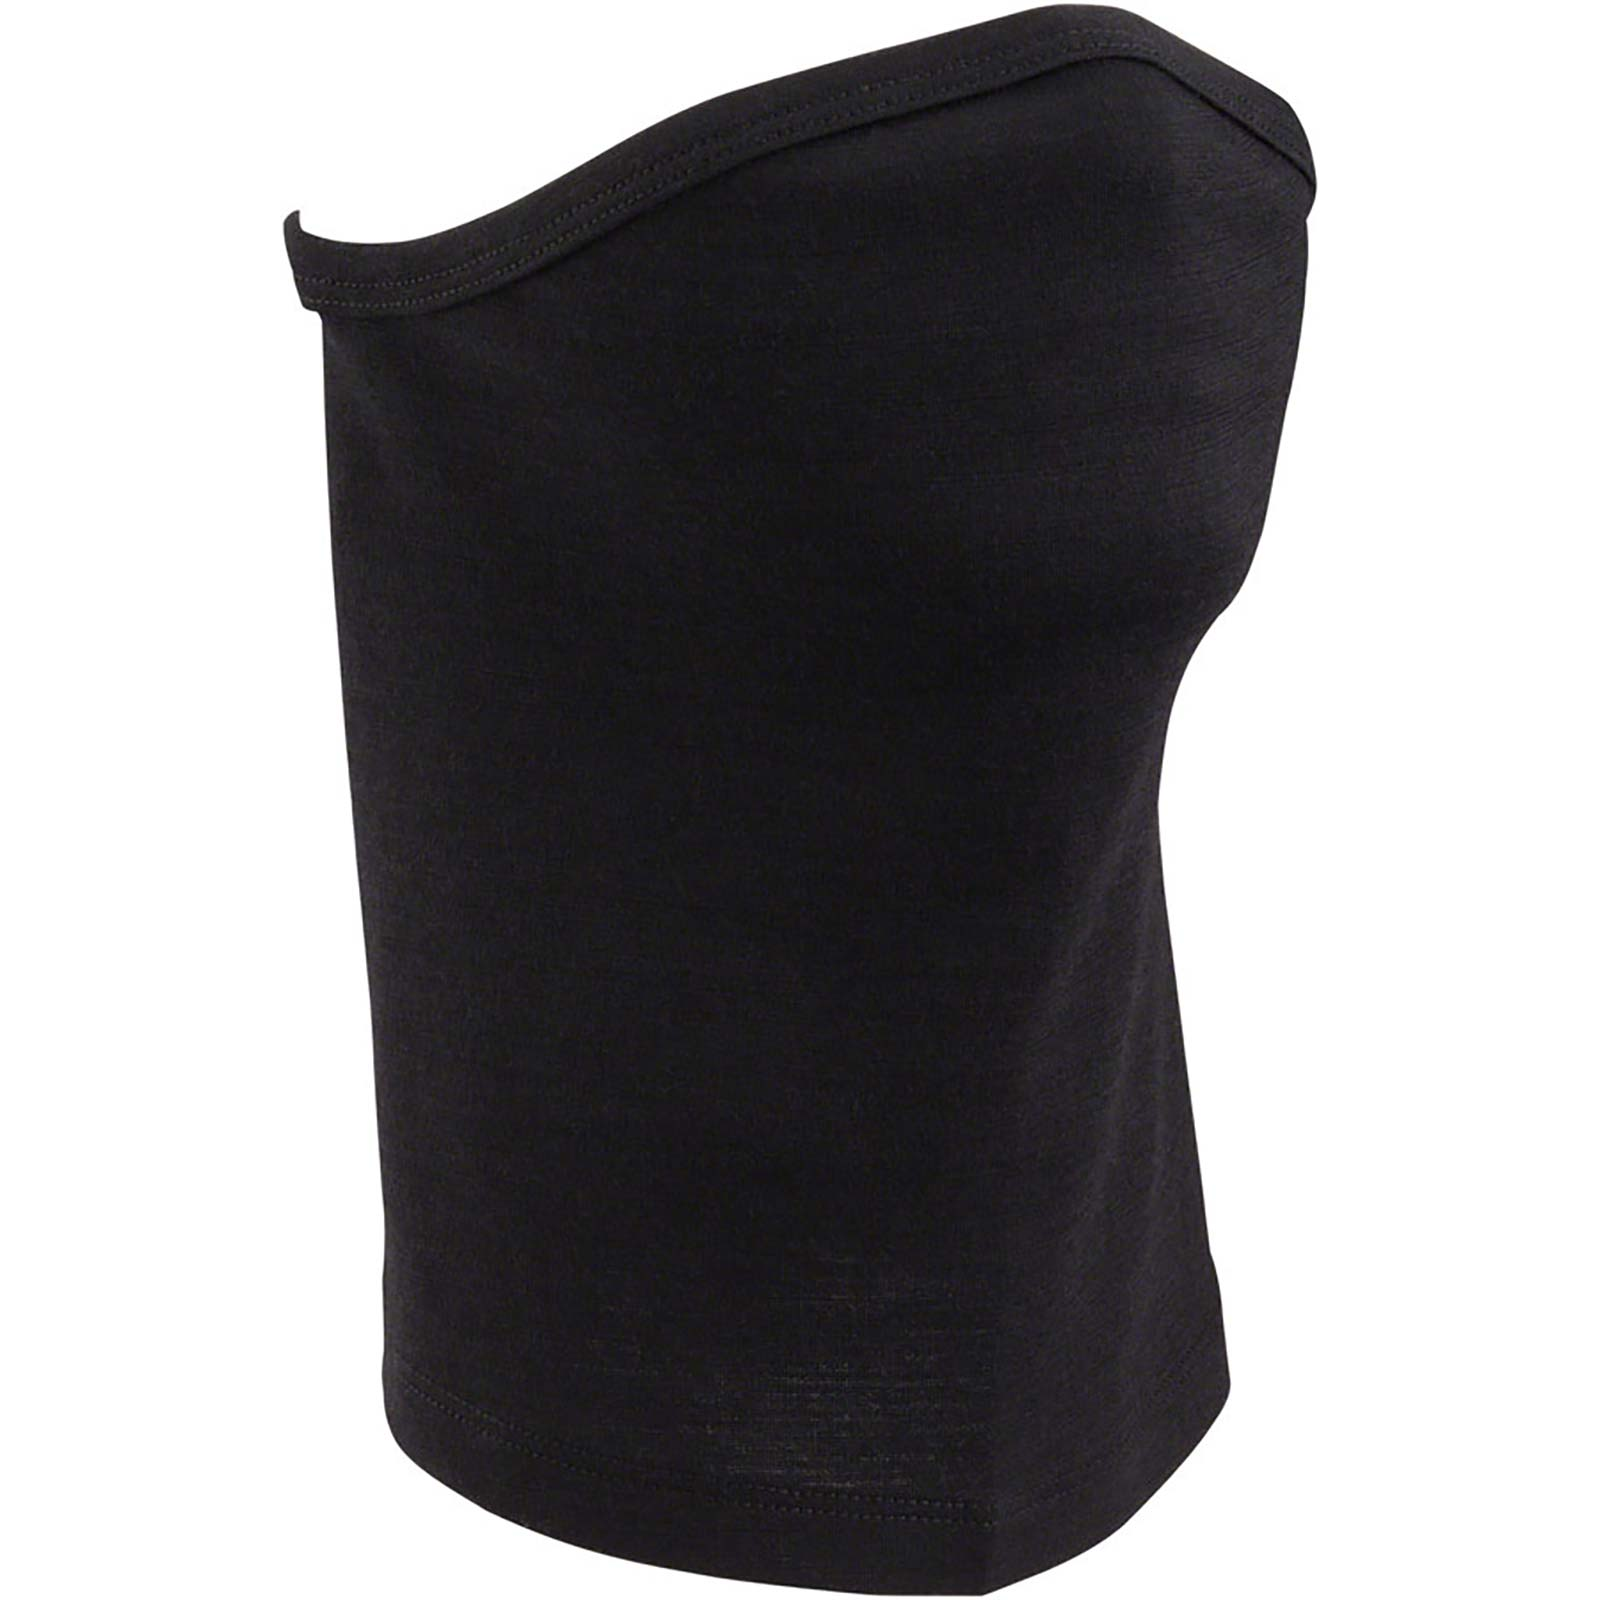 45NRTH Blowtorch Neck Gaiter Black